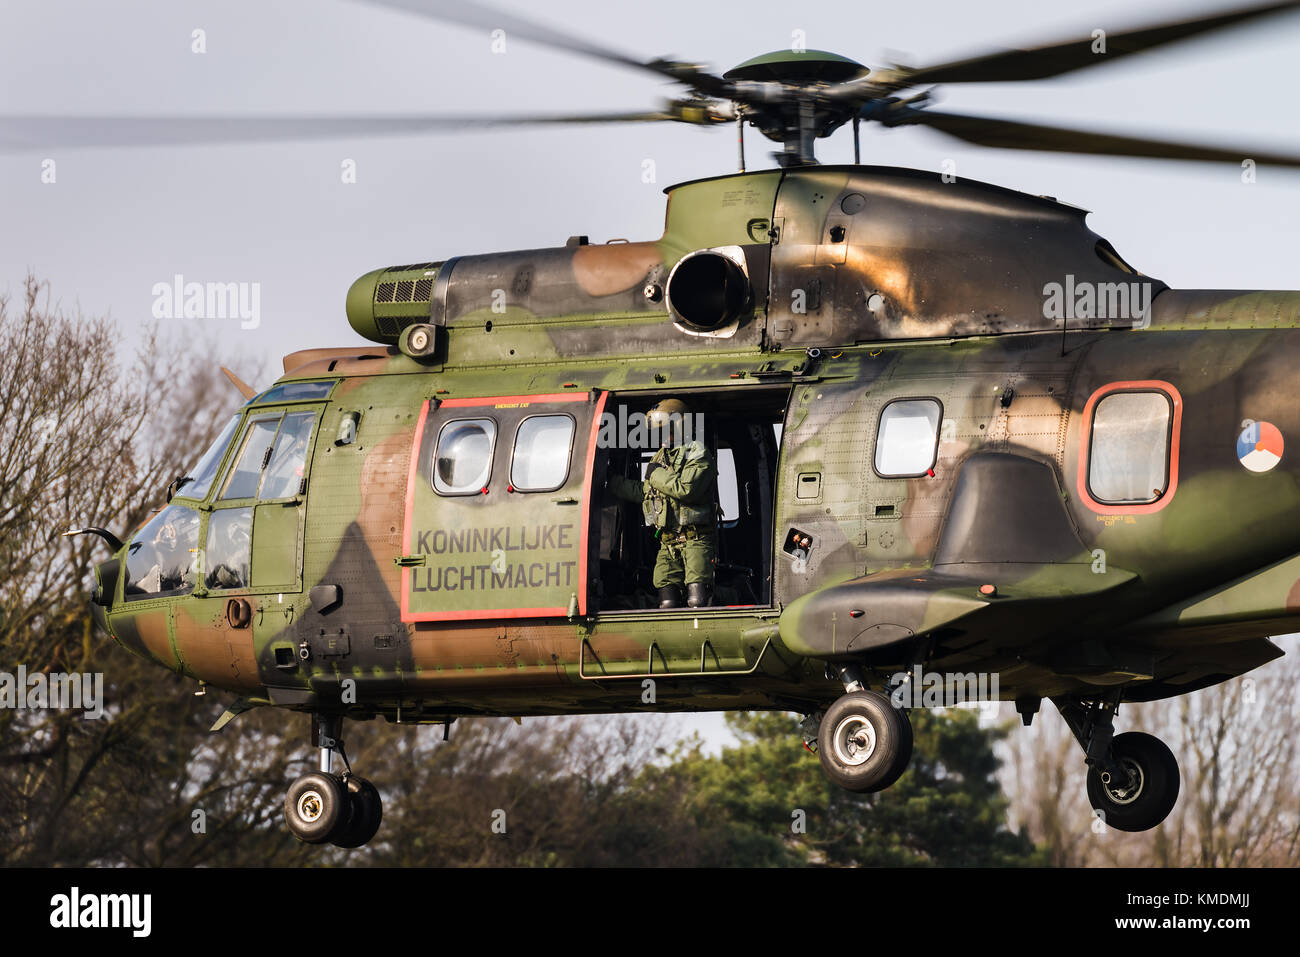 A Eurocopter AS 532 Cougar military transport helicopter of the Royal Netherlands Air Force at the Gilze Rijen Air - Stock Image